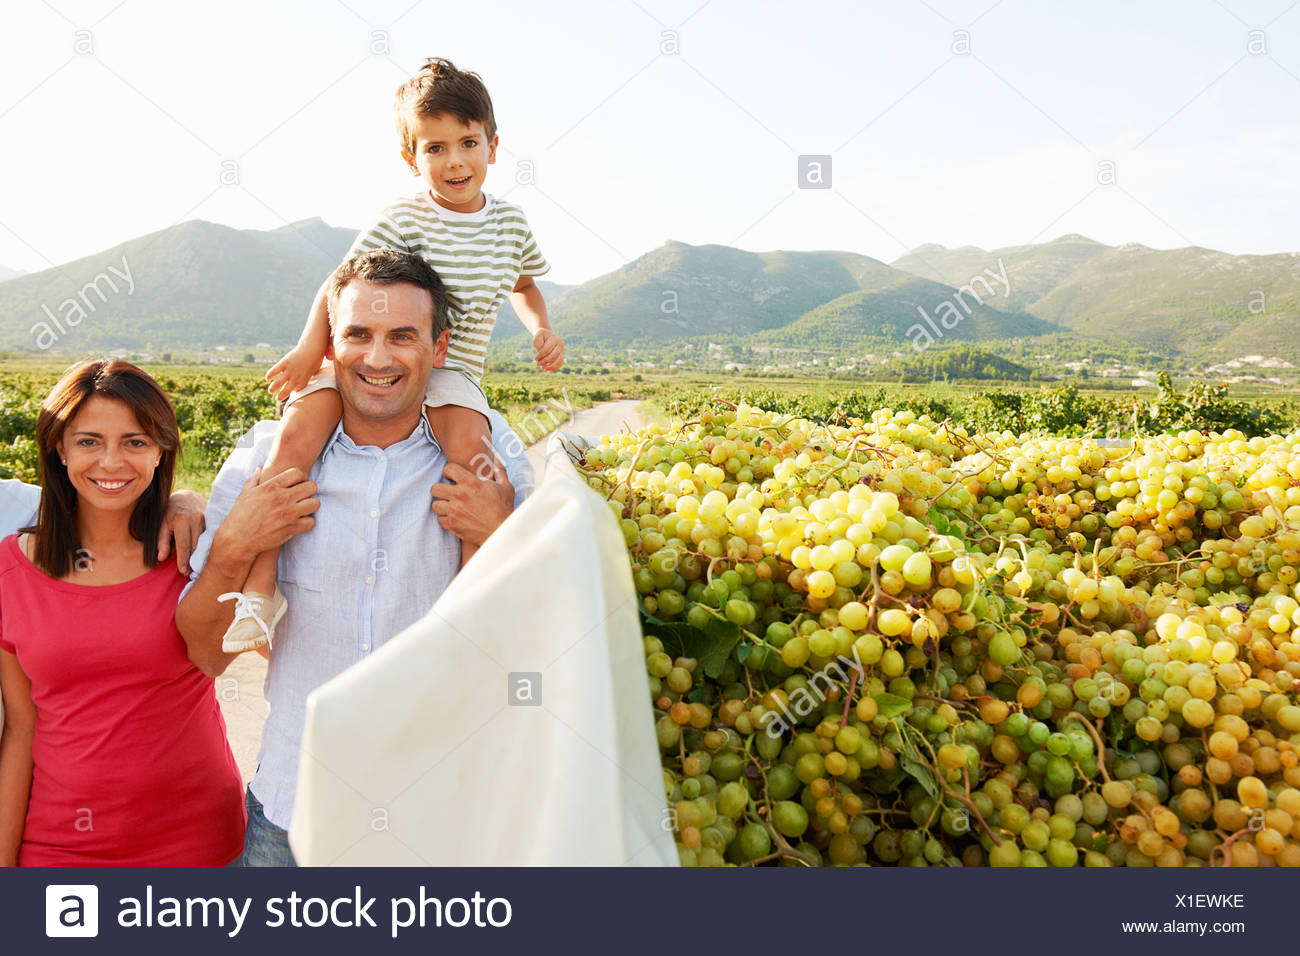 Balades en famille générationnelle vineyard Photo Stock